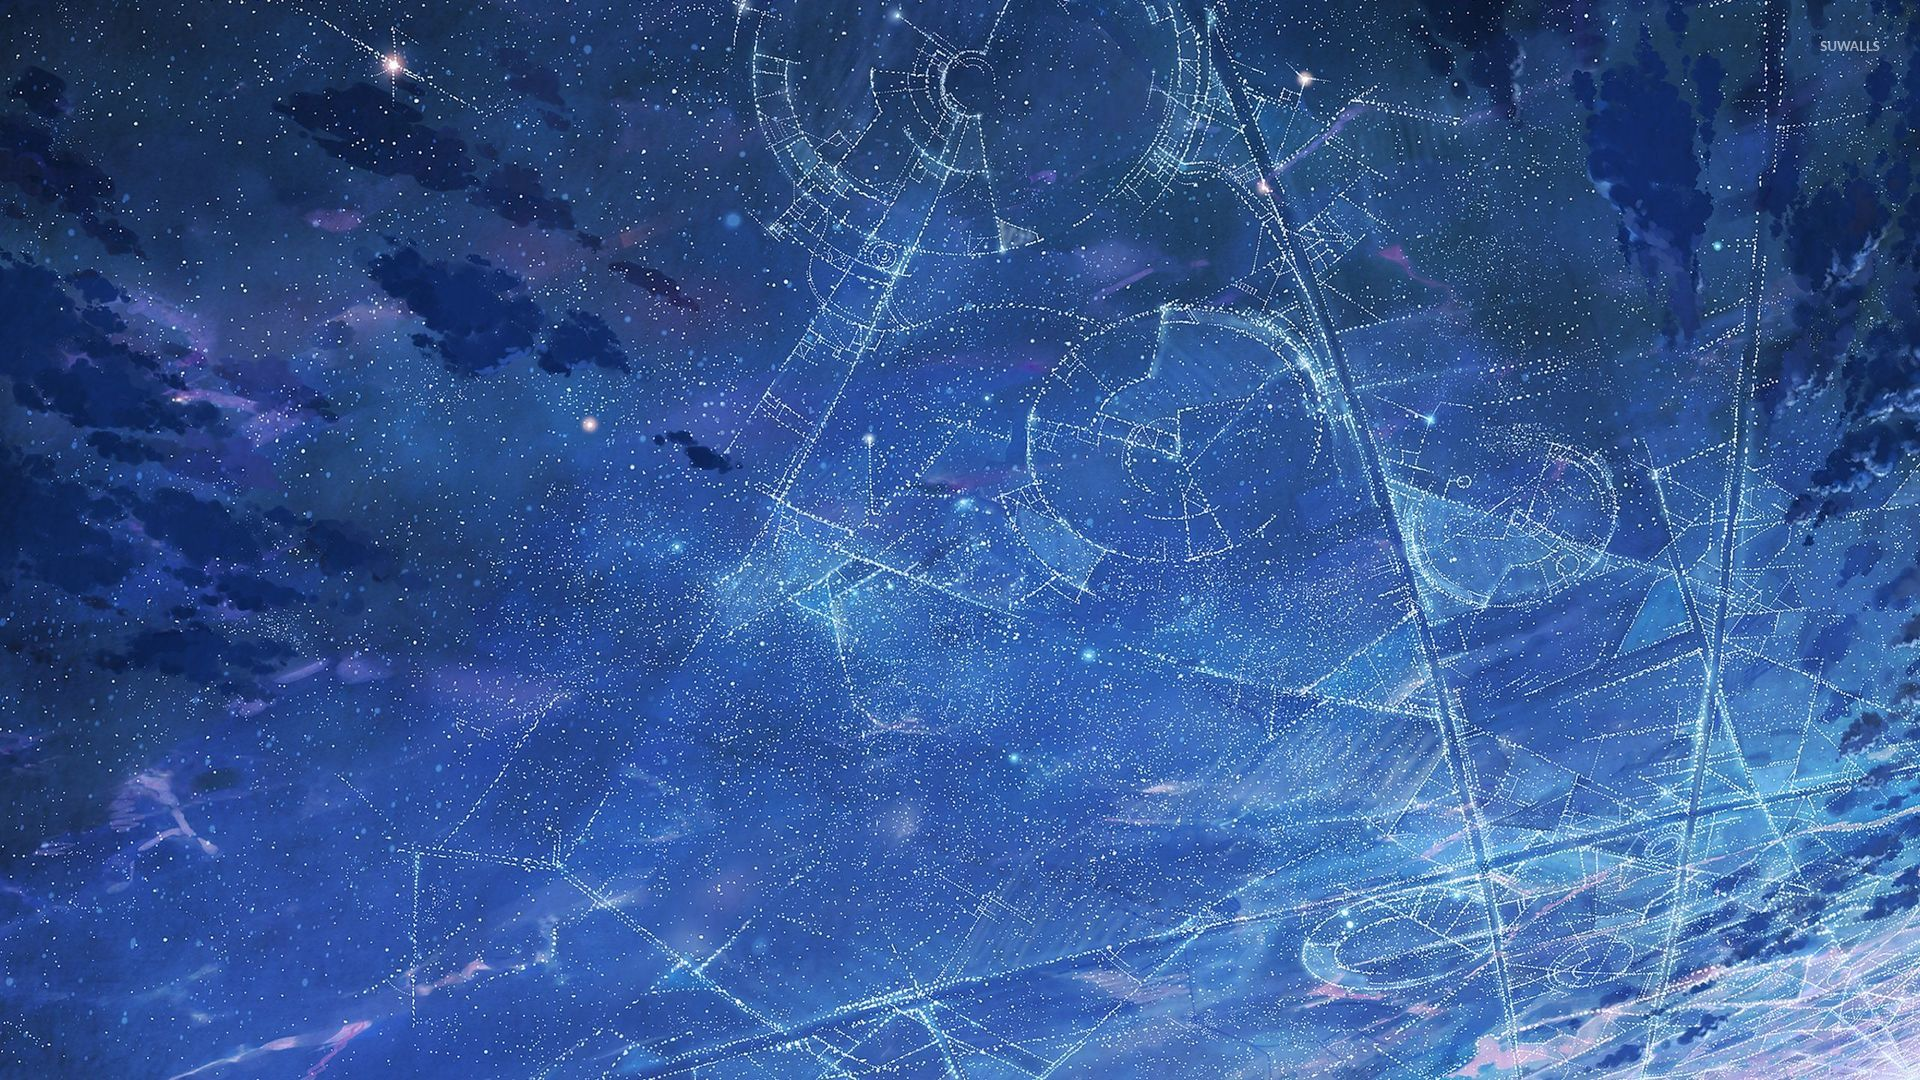 Constellations wallpaper   Anime wallpapers   30638 1920x1080